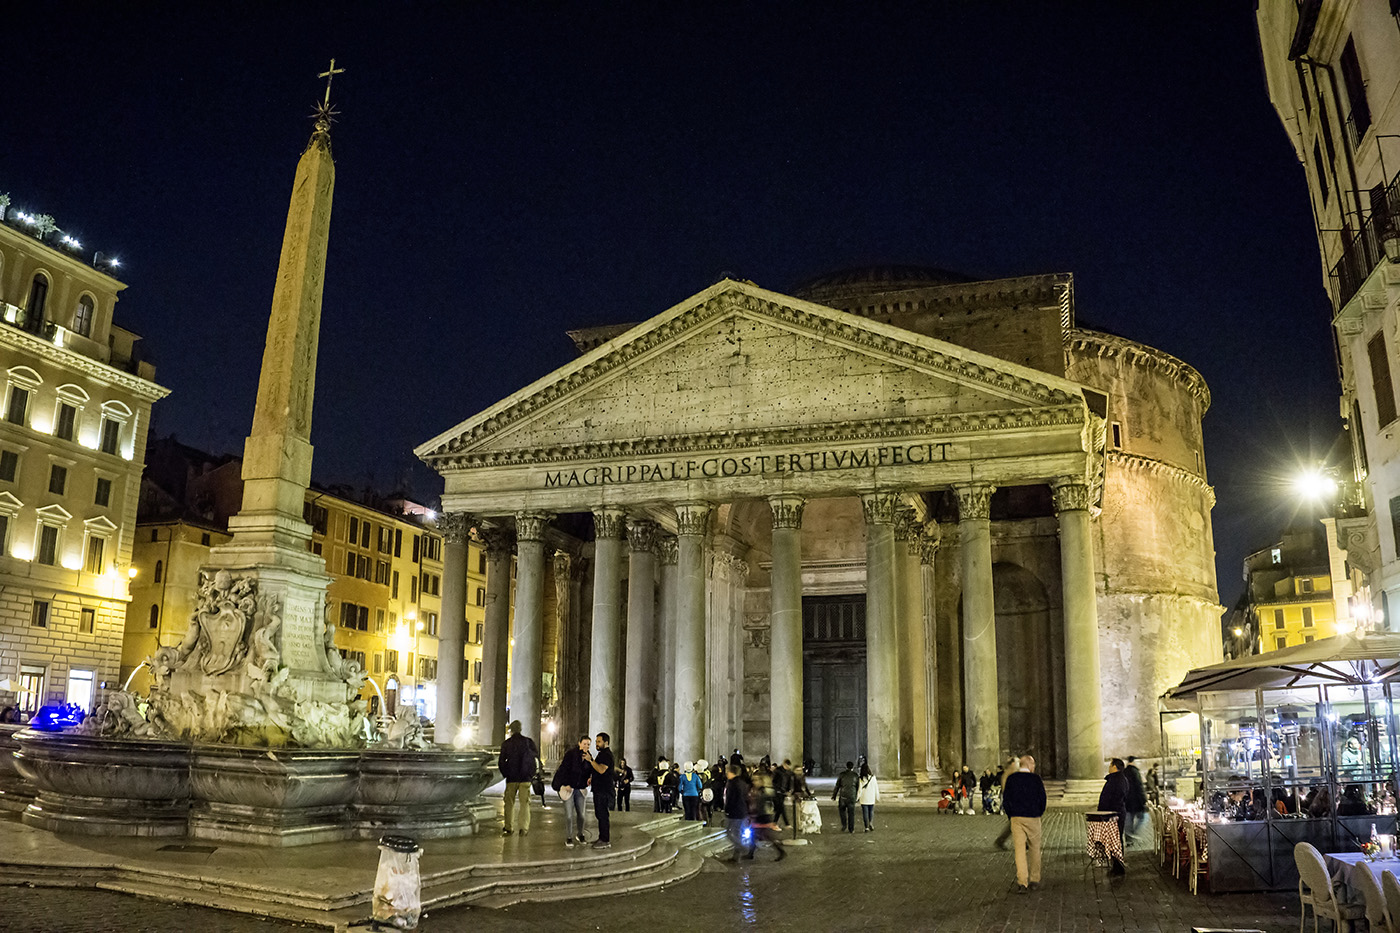 Photo of the Pantheon in Rome, Italy at night